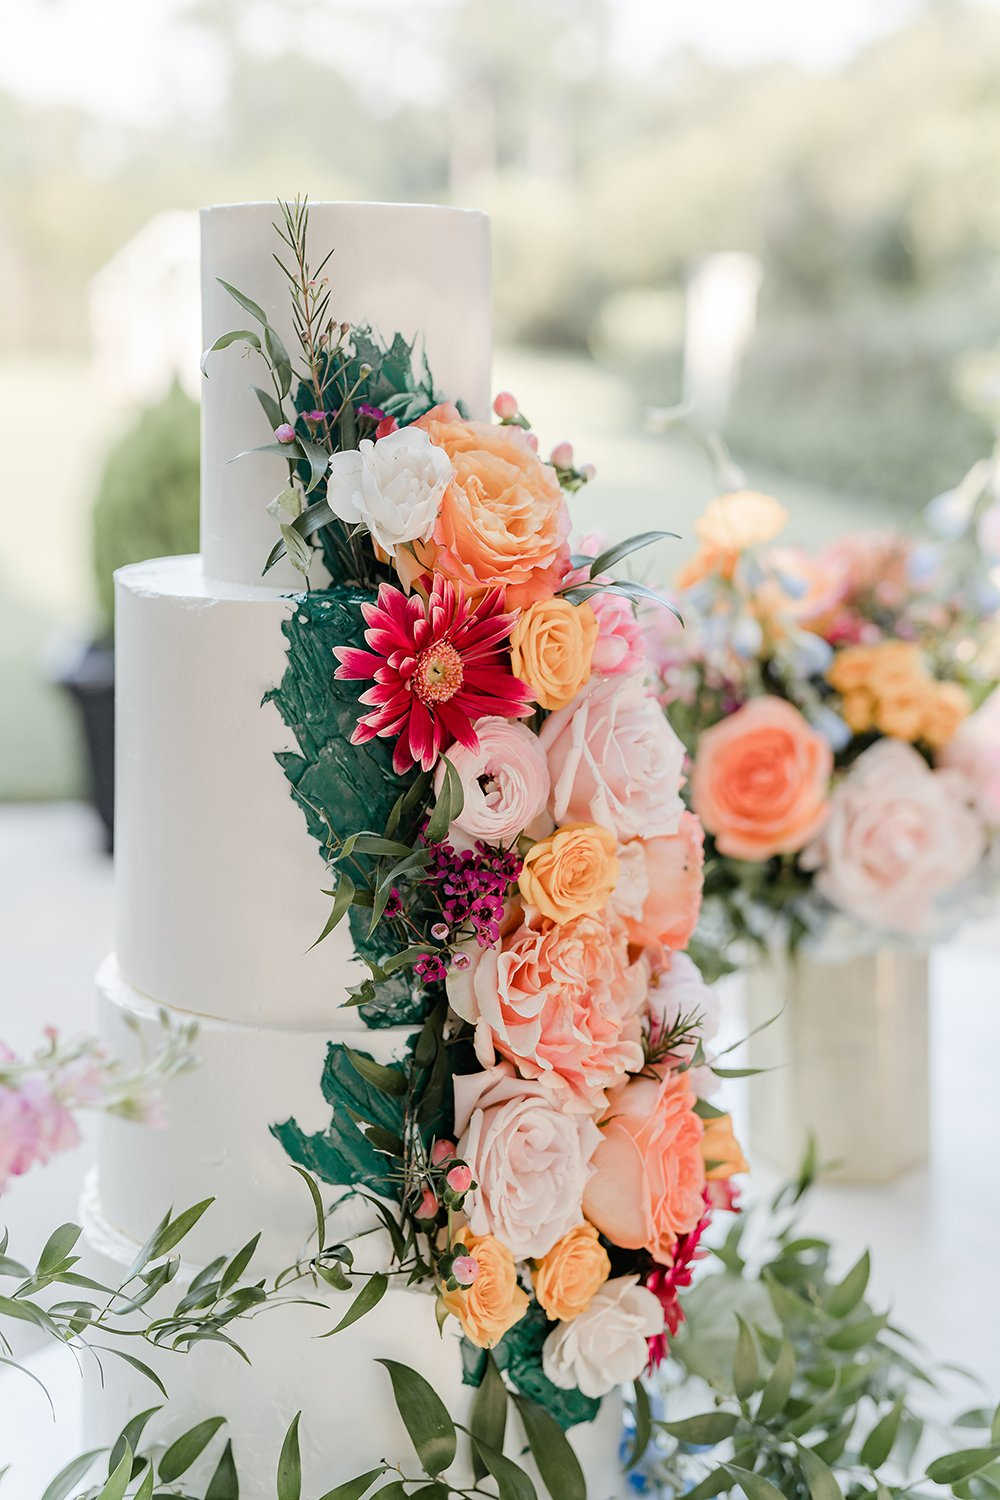 A white butter cream four tiered cake adorned with fresh flowers by Marblelous Cakes.